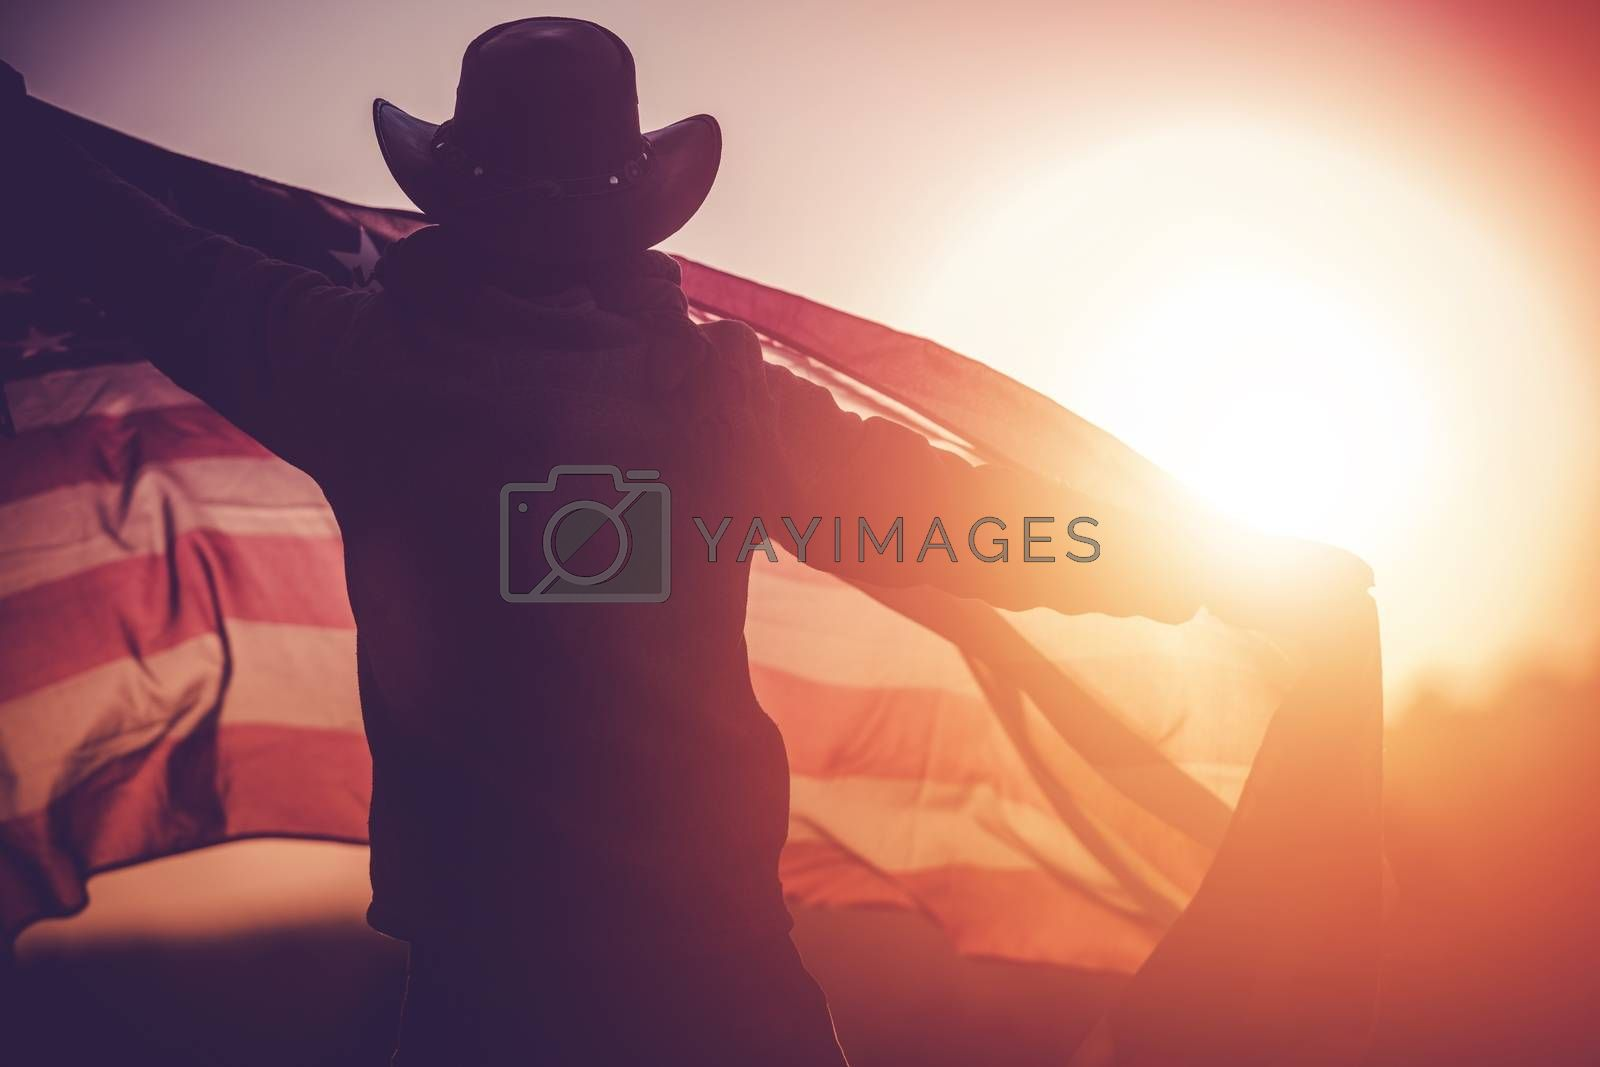 Royalty free image of Independence Day Celebration by welcomia